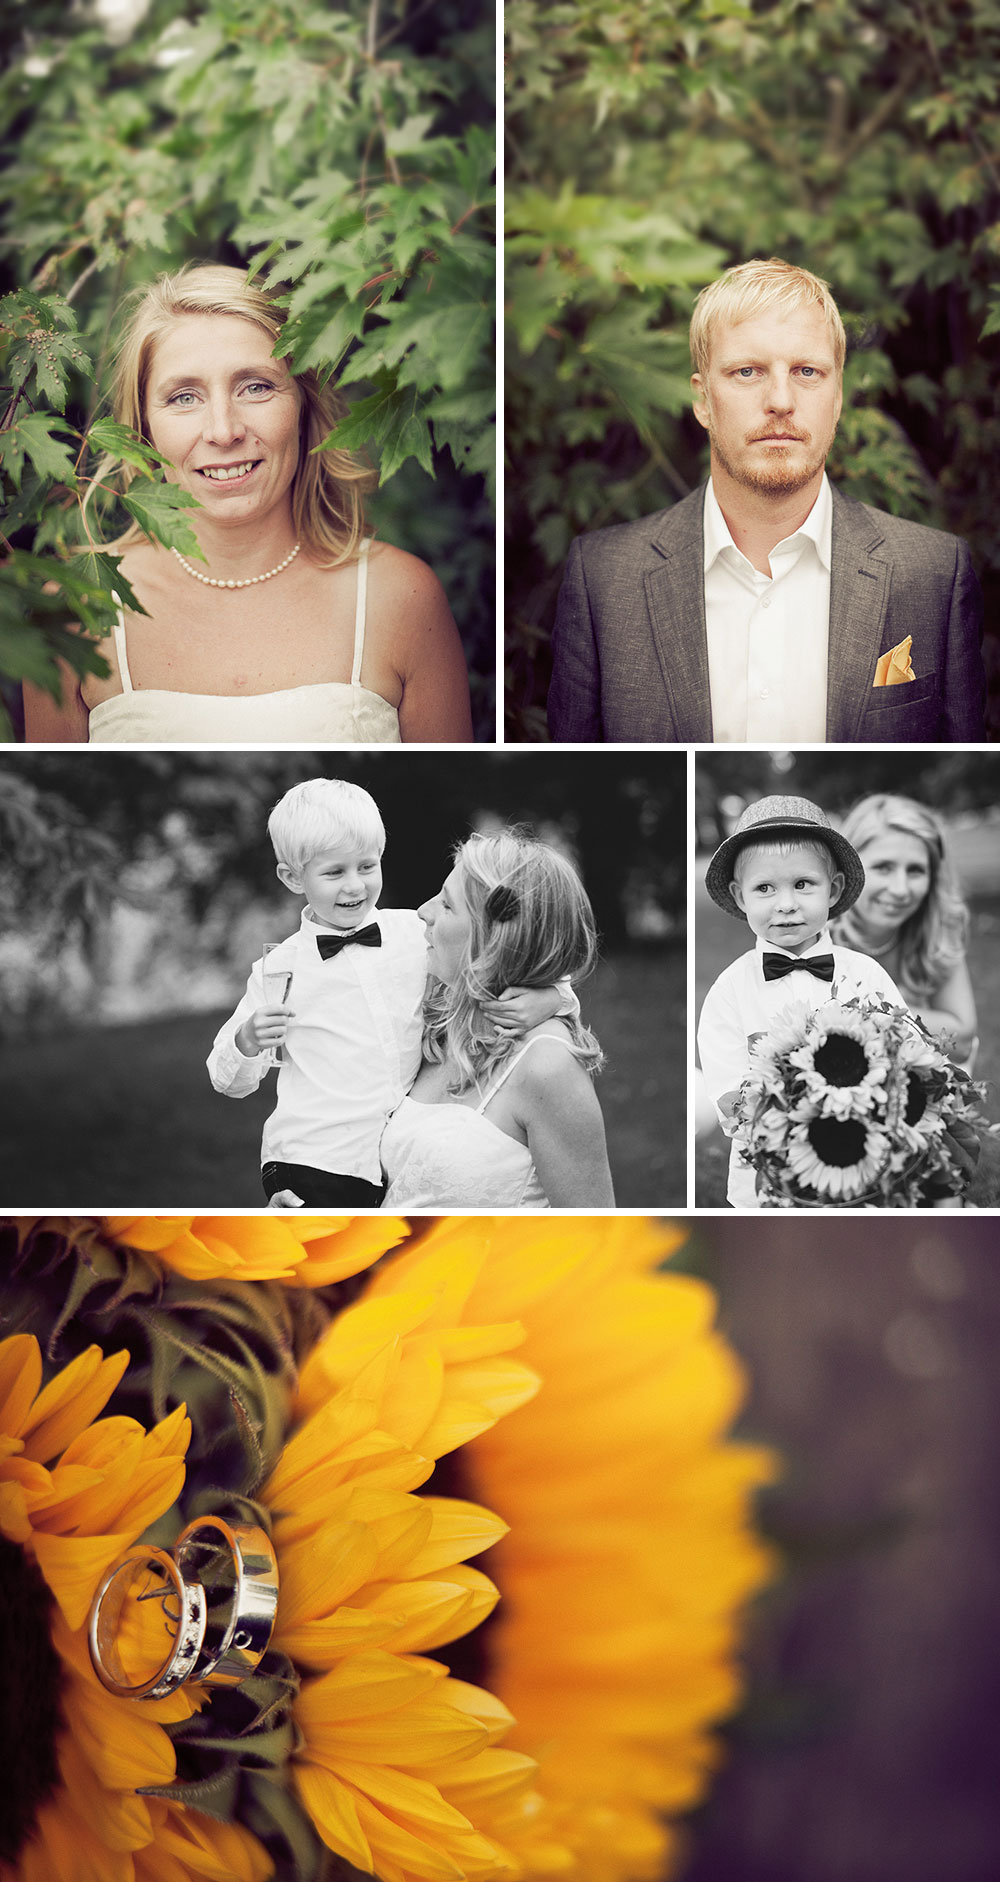 An simple autumn wedding in Trädgårdsföreningen